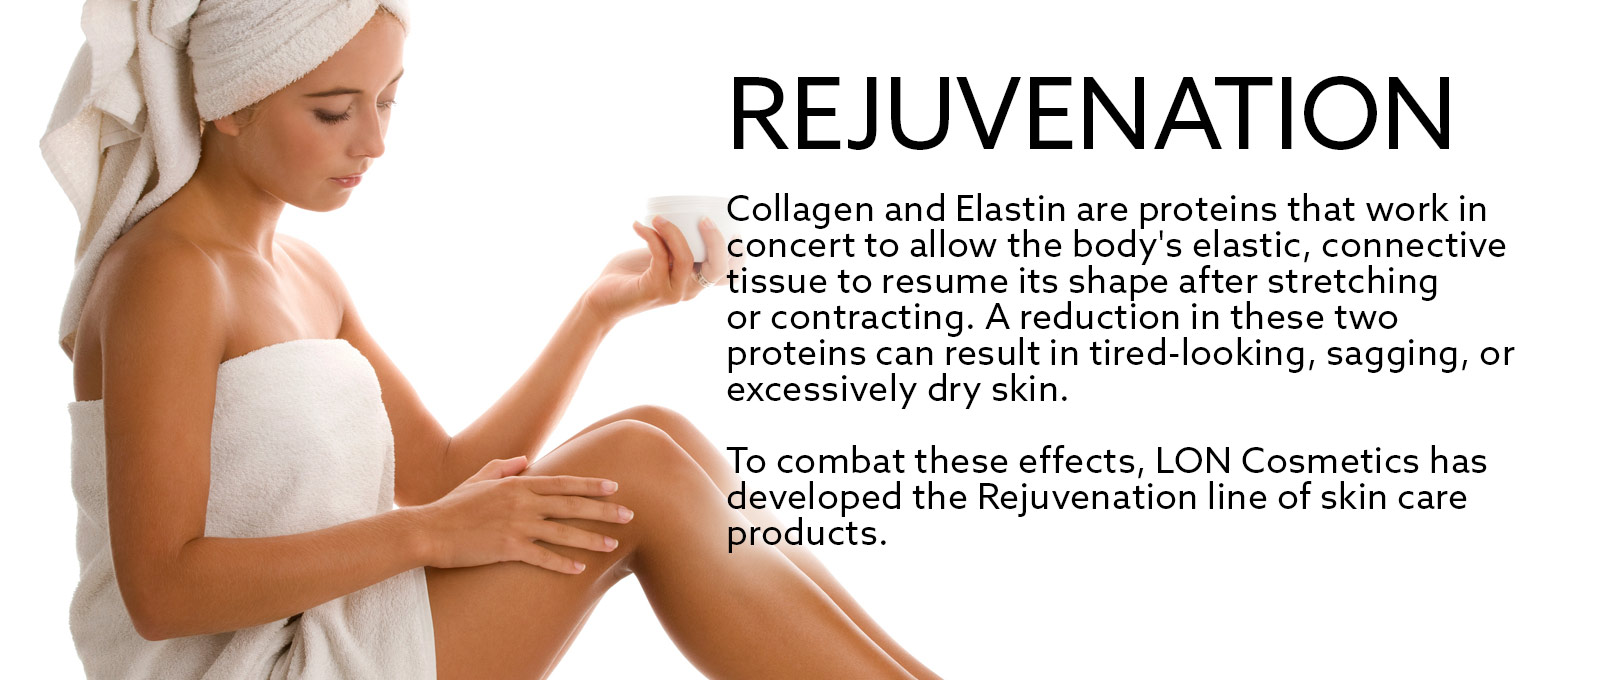 Collagen and Elastin allow the body's connective tissue to resume its shape. A reduction in these proteins can result in excessively dry skin.